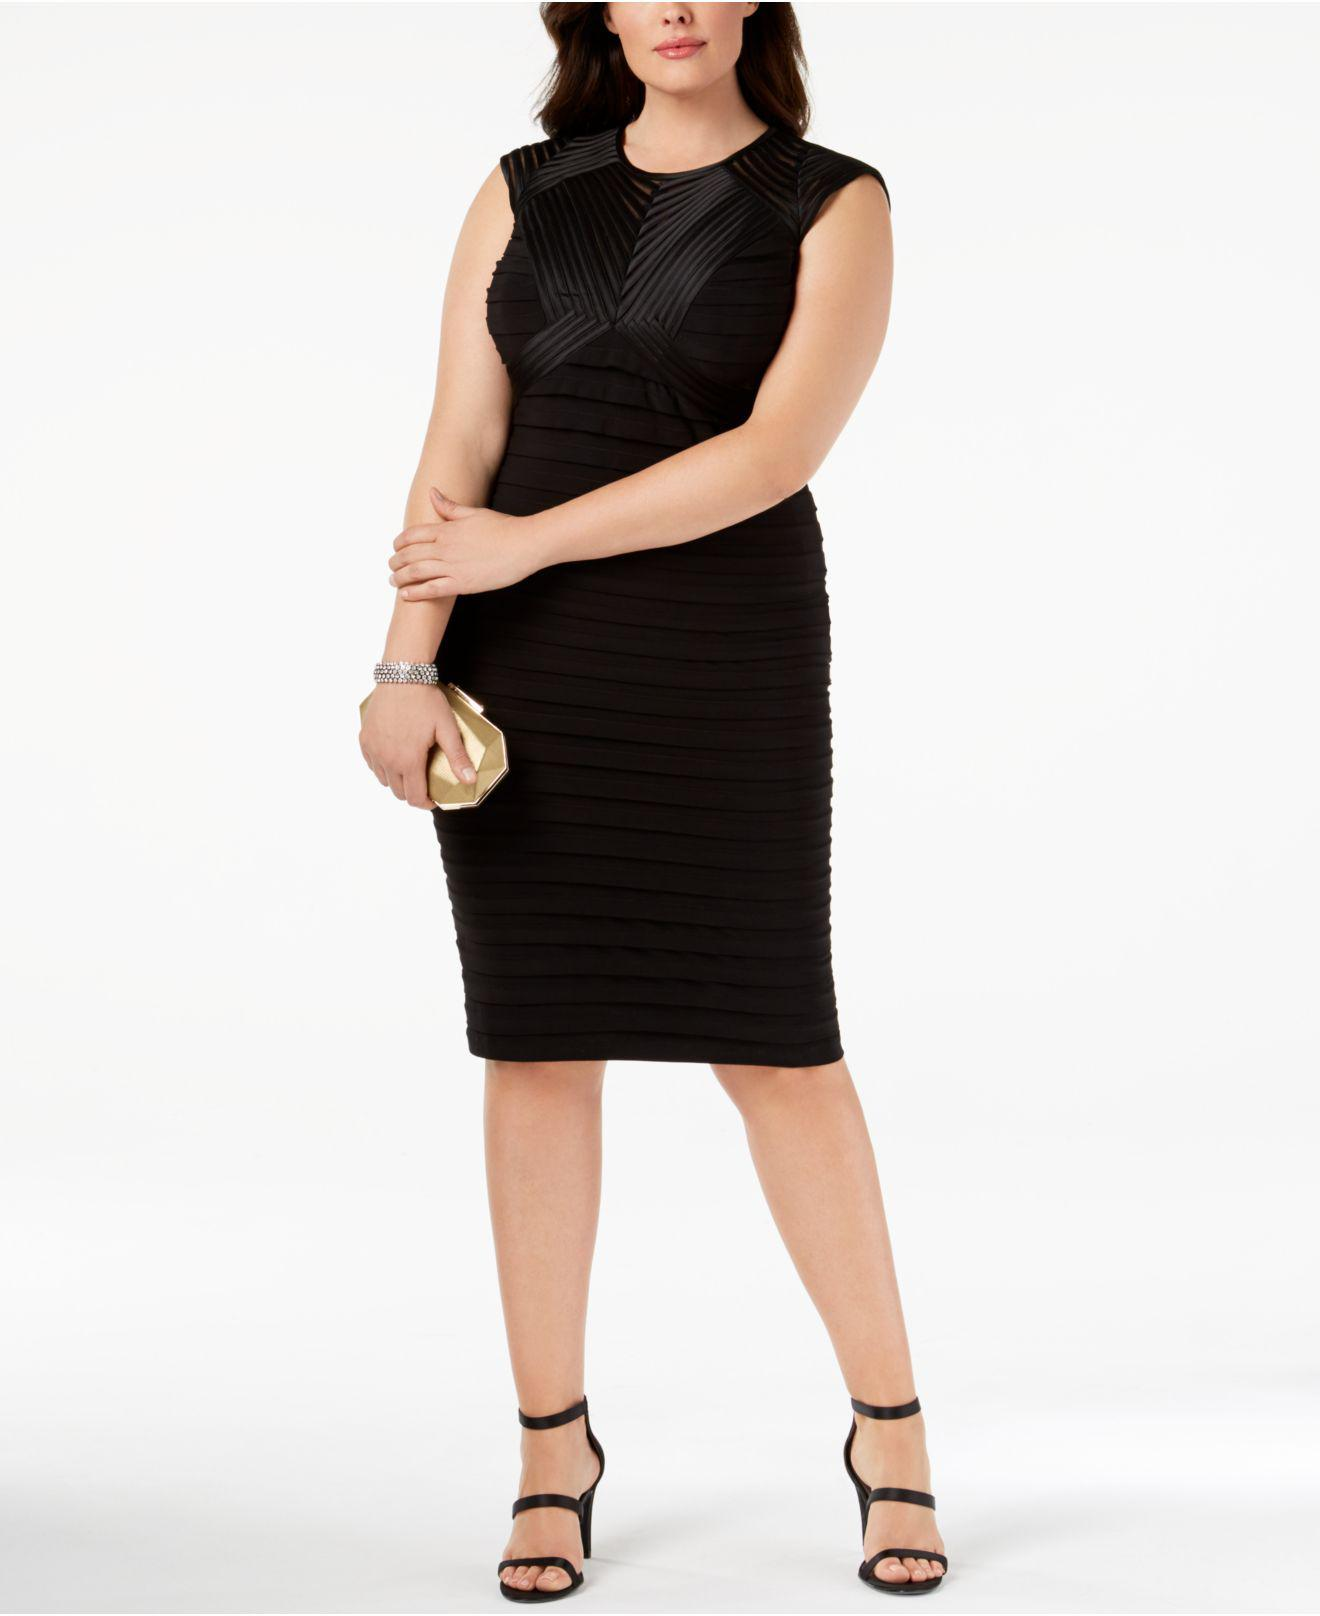 bff7fb62 Betsy & Adam Plus Size Banded Sheath Dress in Black - Lyst